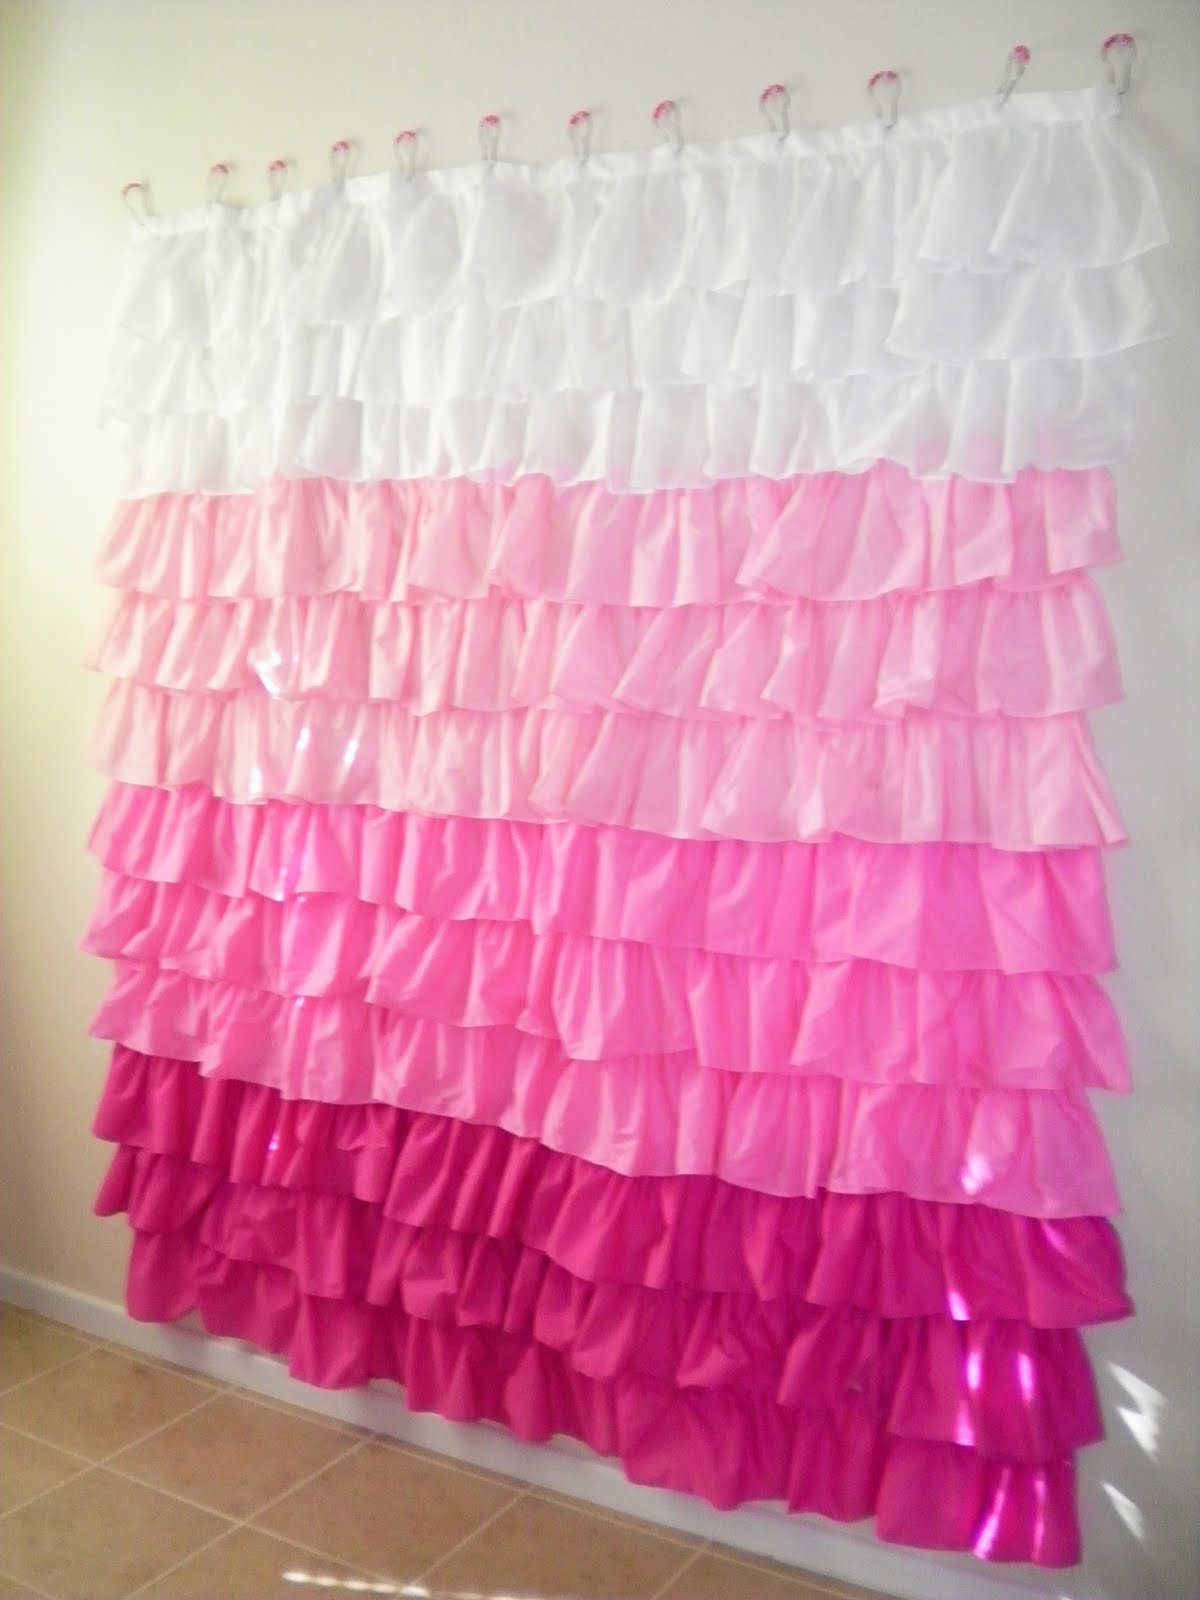 Ruffle shower curtain - Oodles Of Ruffles Shower Curtain